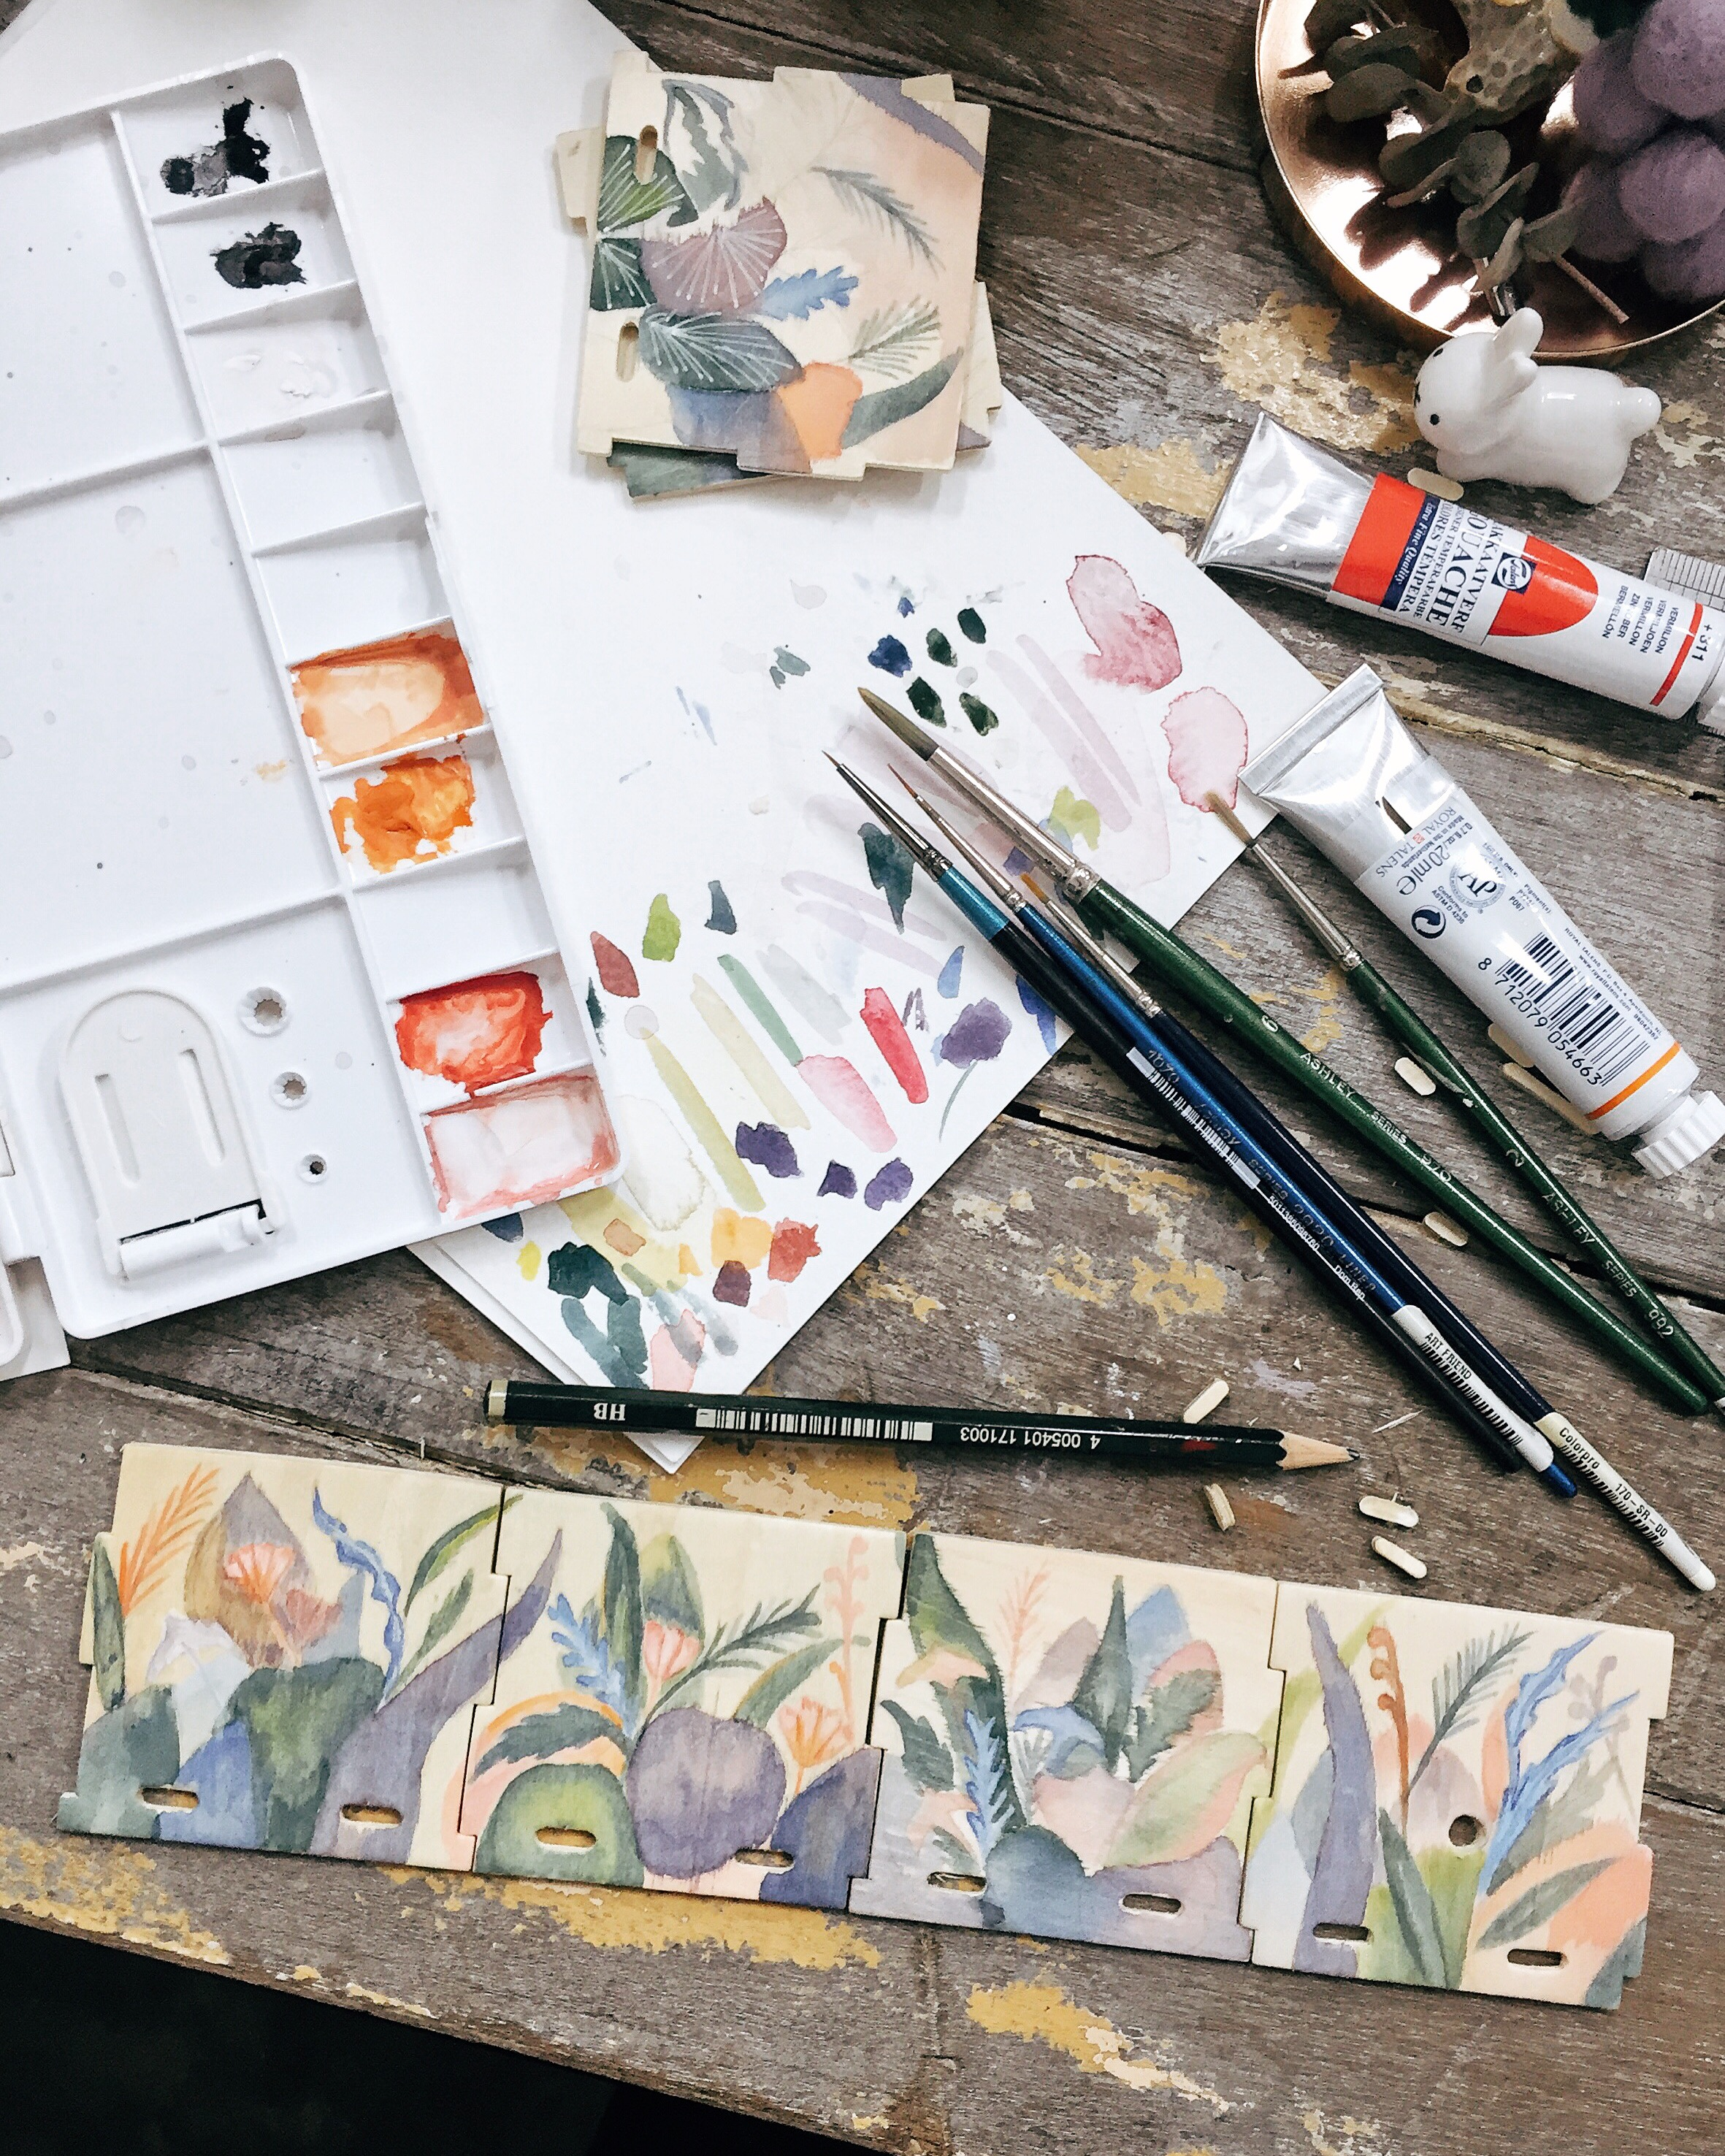 A rare photo of my messy work desk – experimenting with gouache on wood.